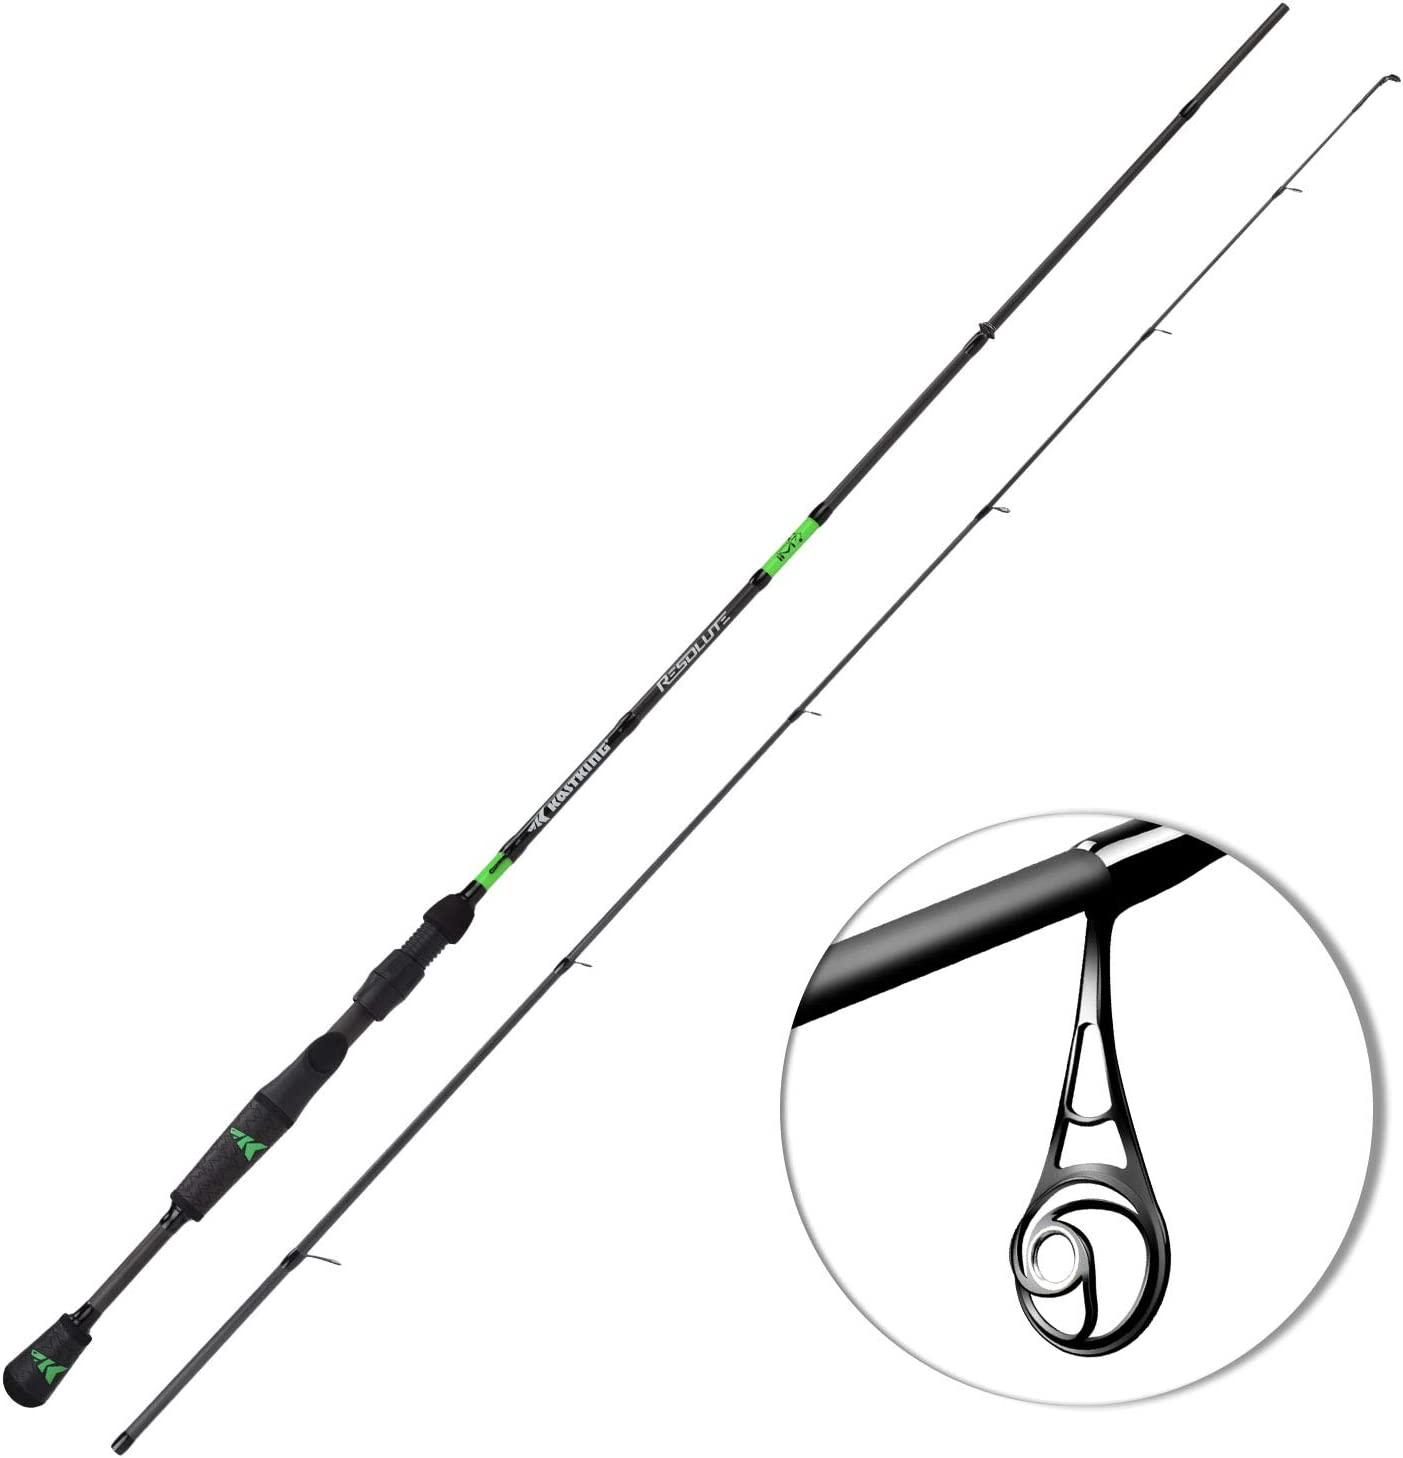 KastKing Spin Resolute Fishing Rod